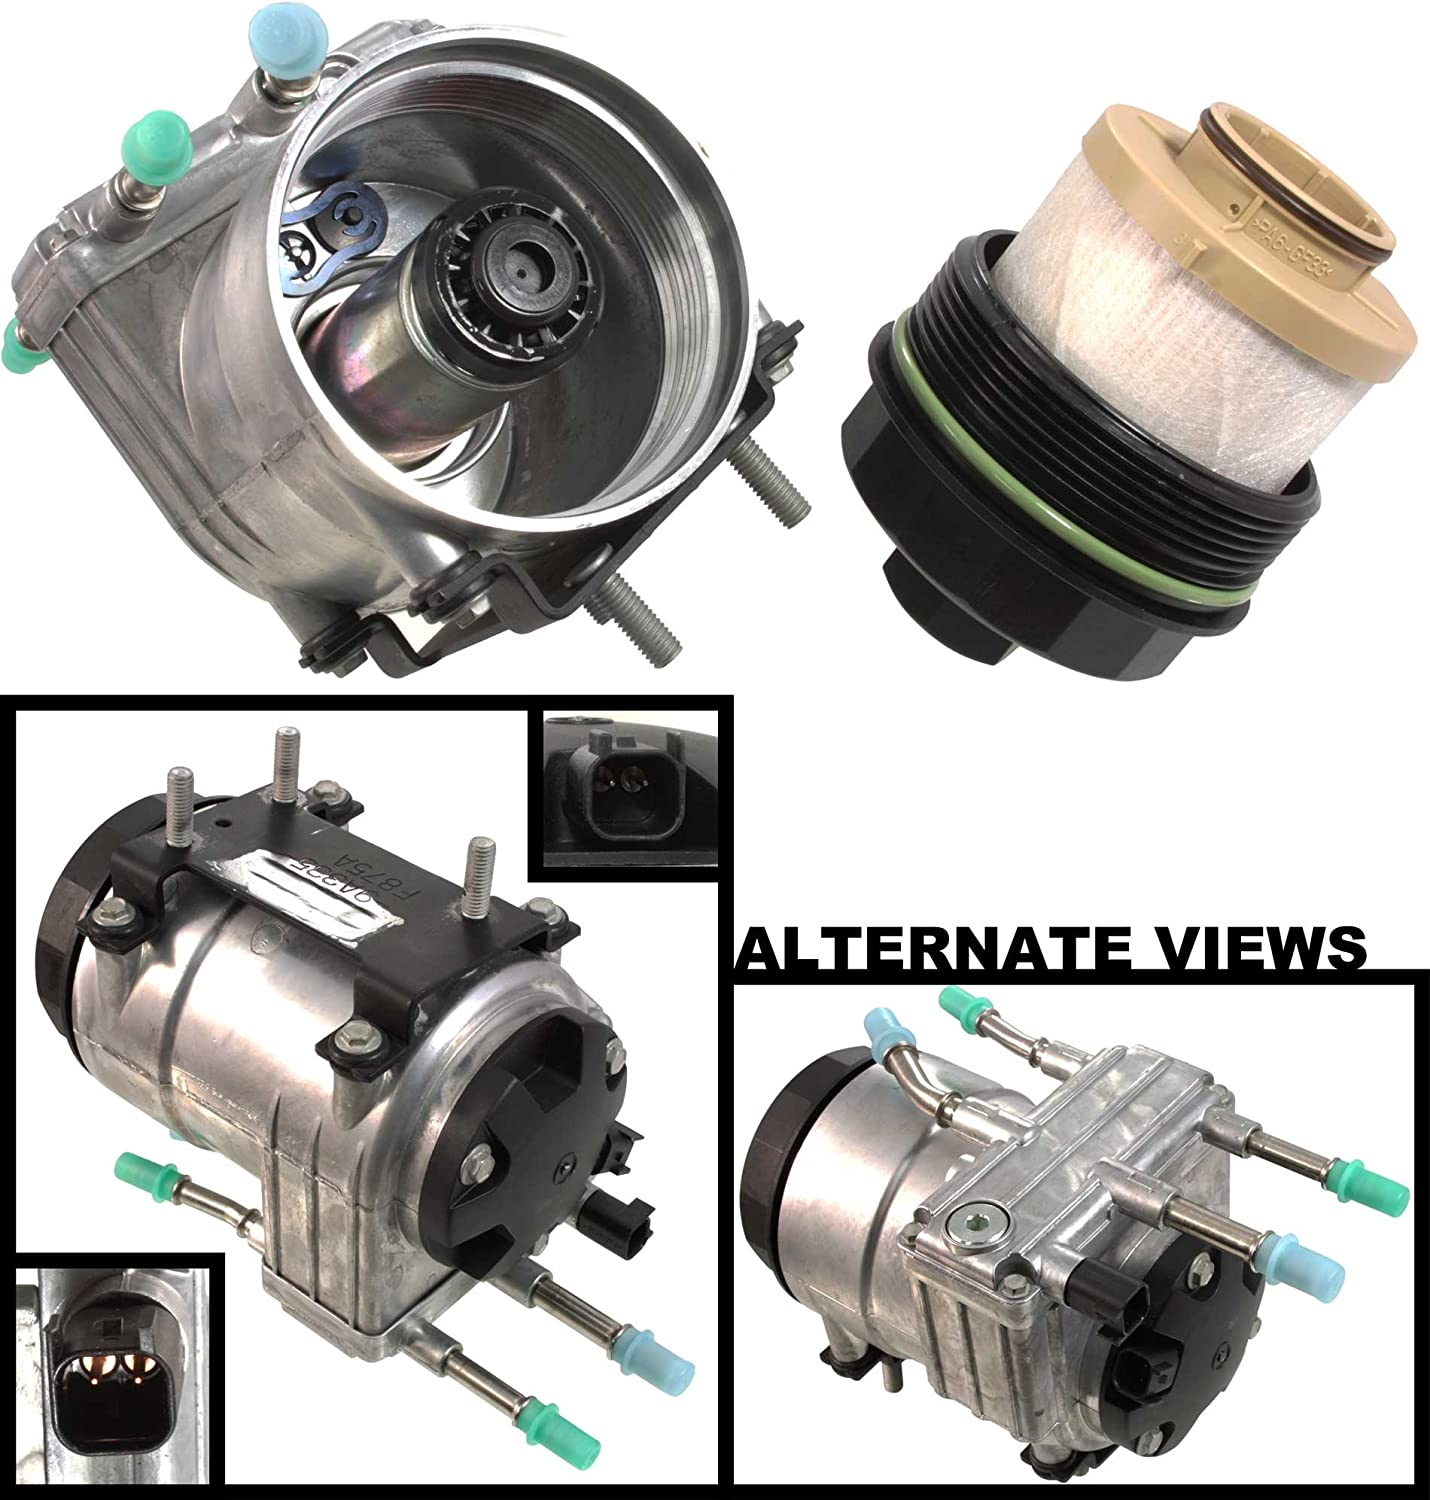 [SCHEMATICS_4FR]  Amazon.com: APDTY 112774 Fuel Filter Conditioning Complete Housing Module  (Horizontal Frame Mounted) Fits 2003-2007 Ford 6.0L Diesel Trucks (Replaces  Ford 6C3Z-9G282-C, 6C3Z9G282C, PFB101): Automotive | 05 F250 Fuel Filter Housing |  | Amazon.com